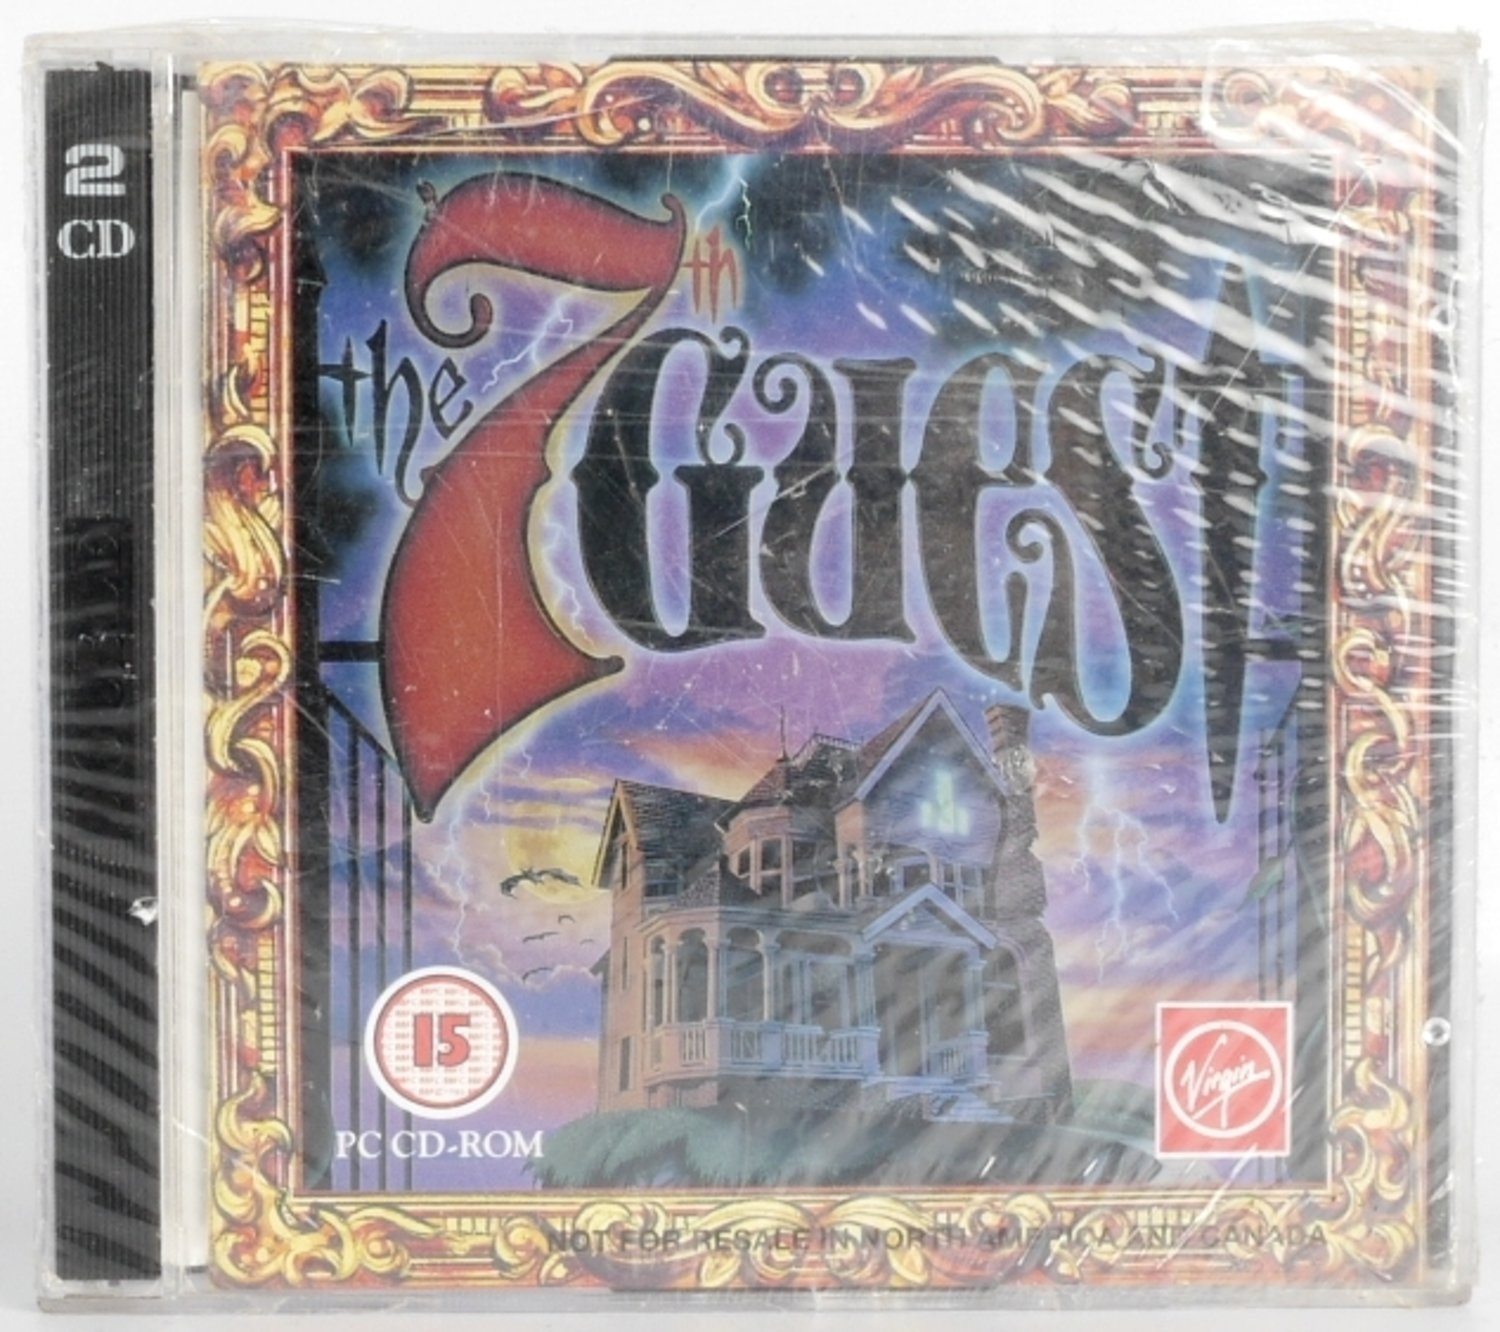 The 7th Guest (PC CD) -